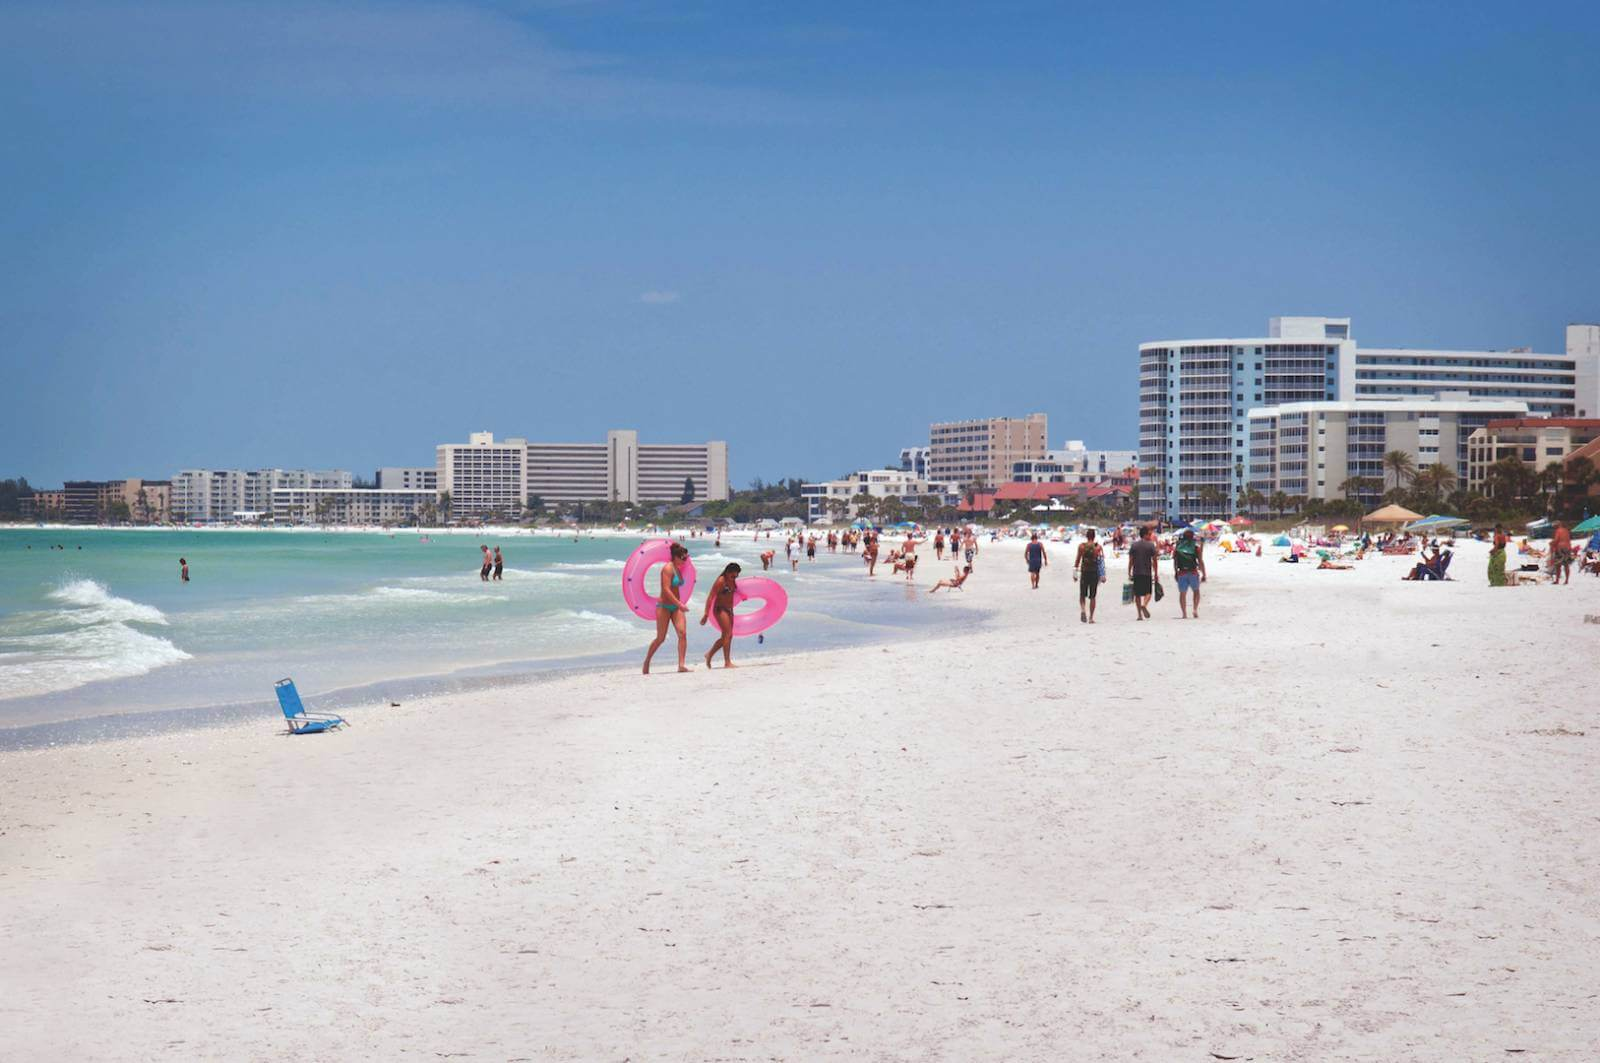 Marco Island Florida S Four Mile Coastline Is Frequently Listed Among The Top 10 Beaches